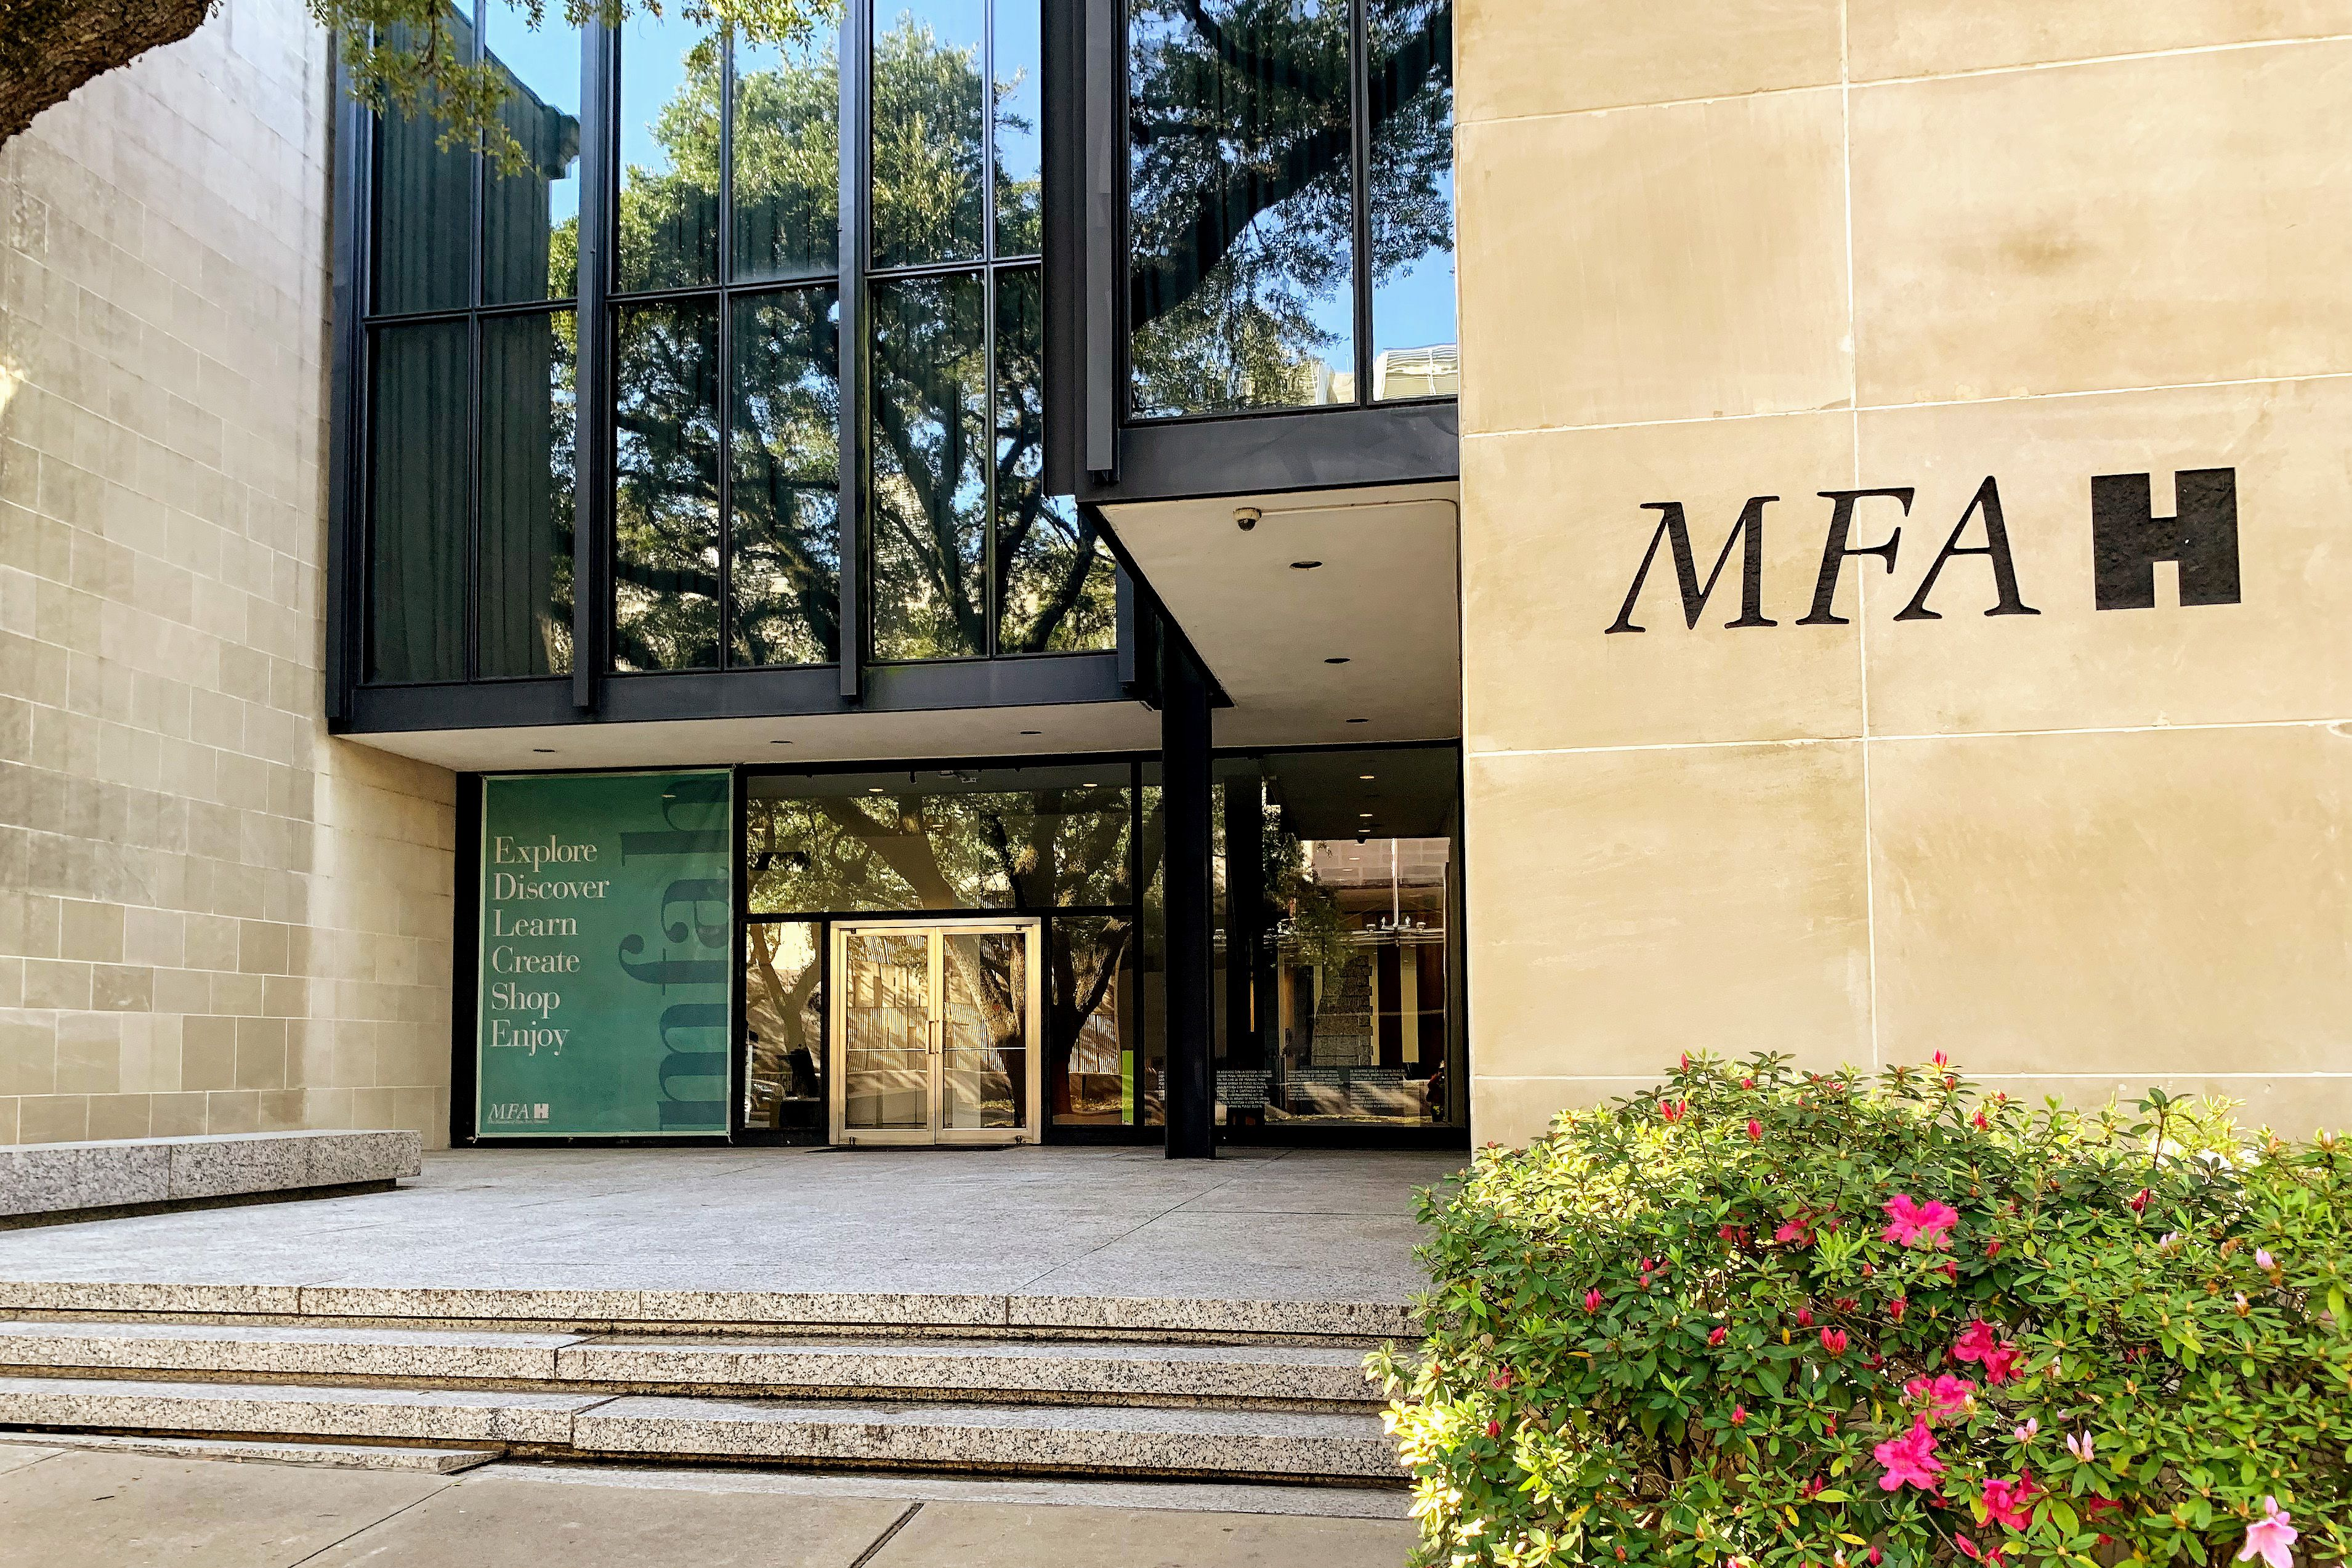 Entrance to the Fine Arts Museum